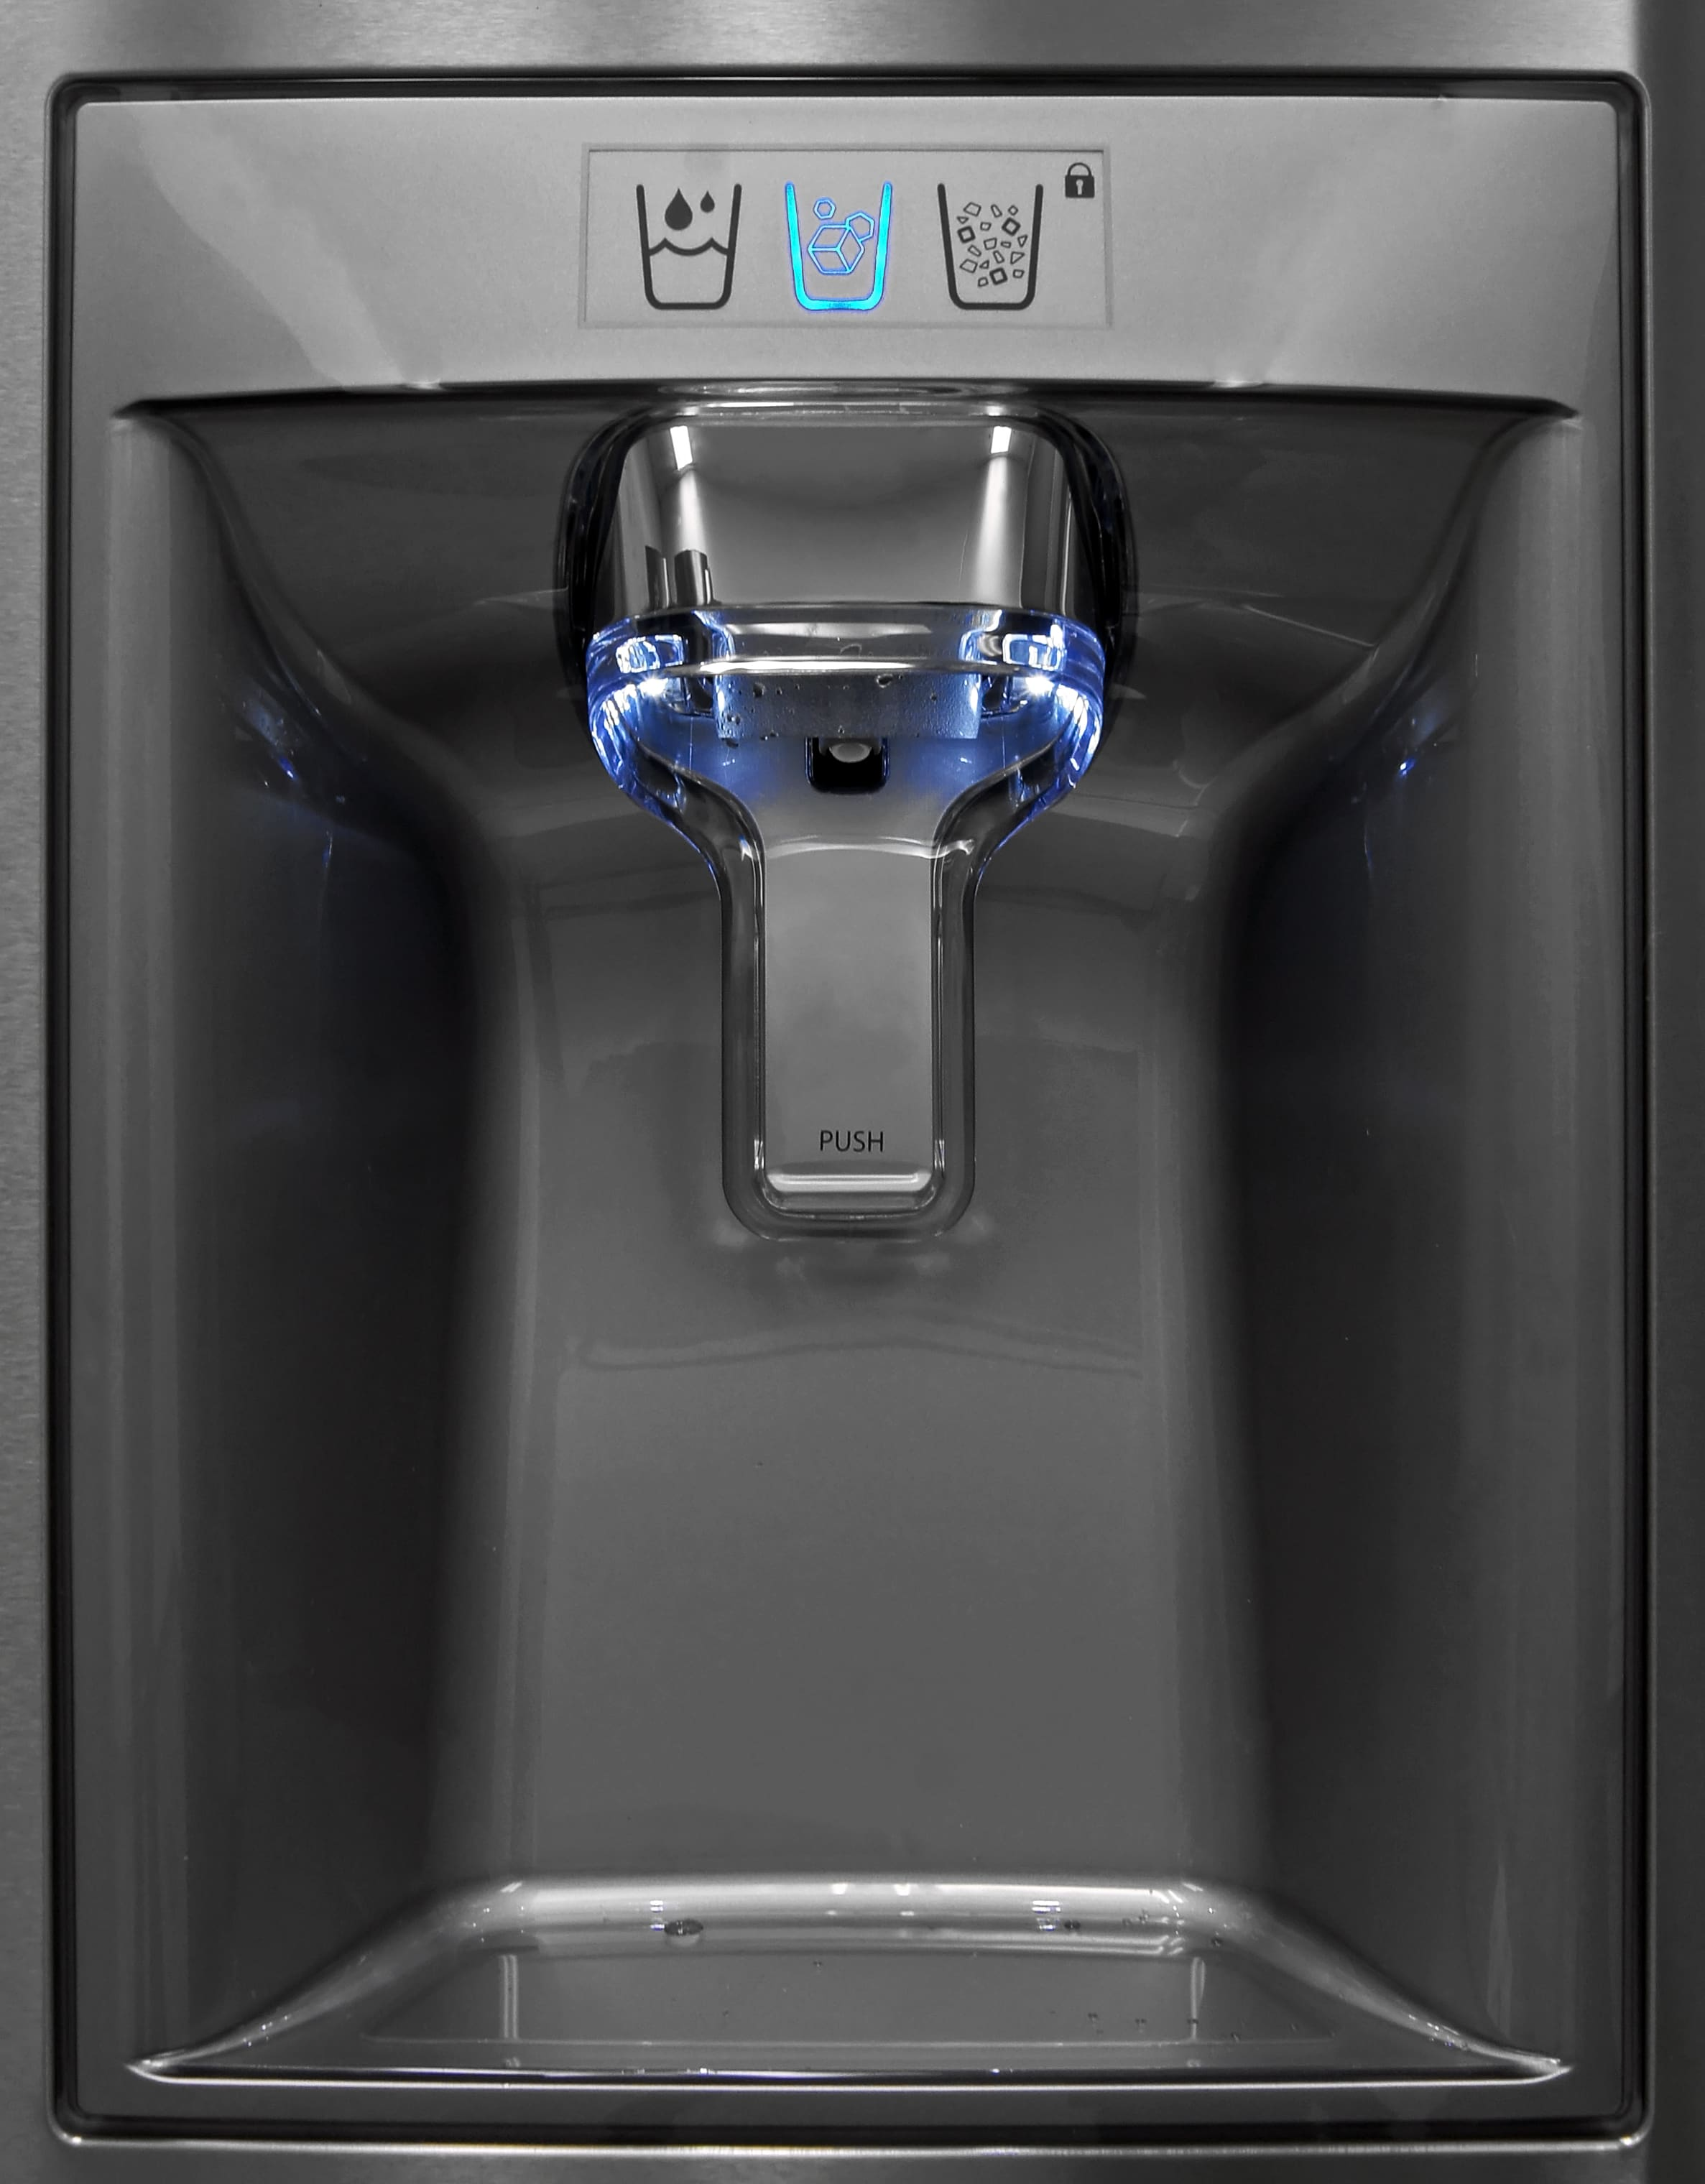 The Kenmore Elite 74025's dispenser is tall, sleek, and blends in perfectly with the rest of the stainless exterior.